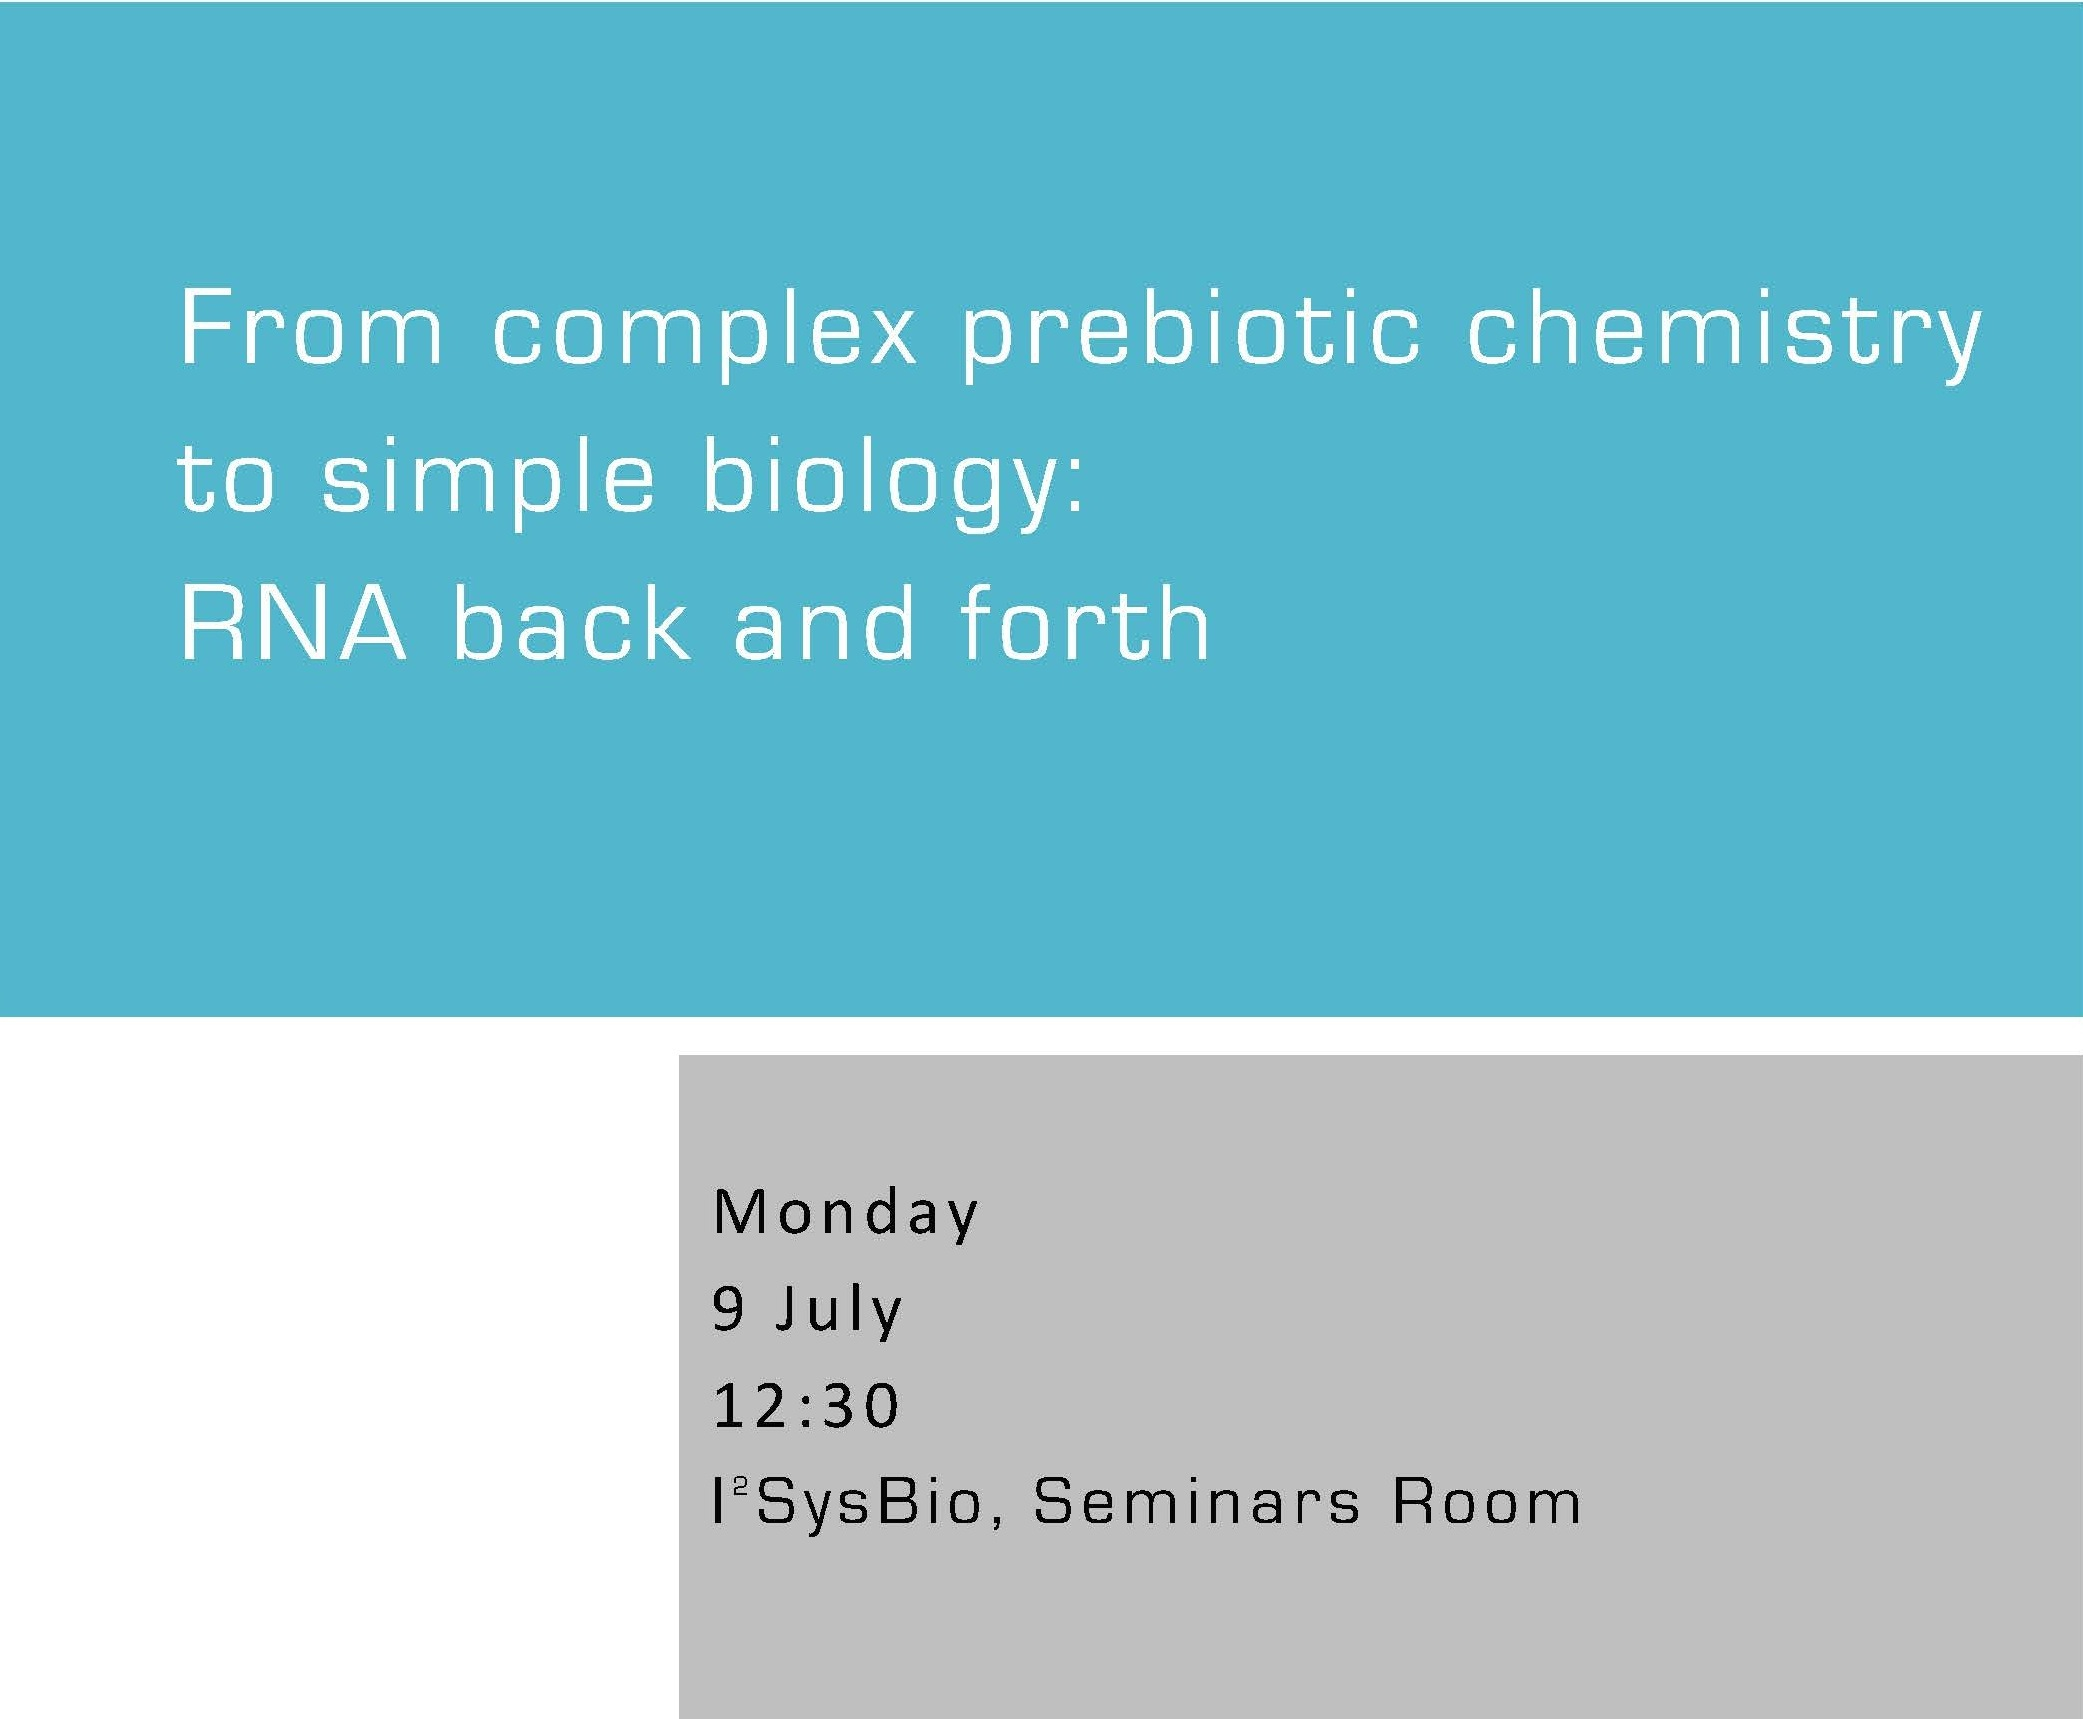 From complex prebiotic chemistry to simple biology: RNA back and forth